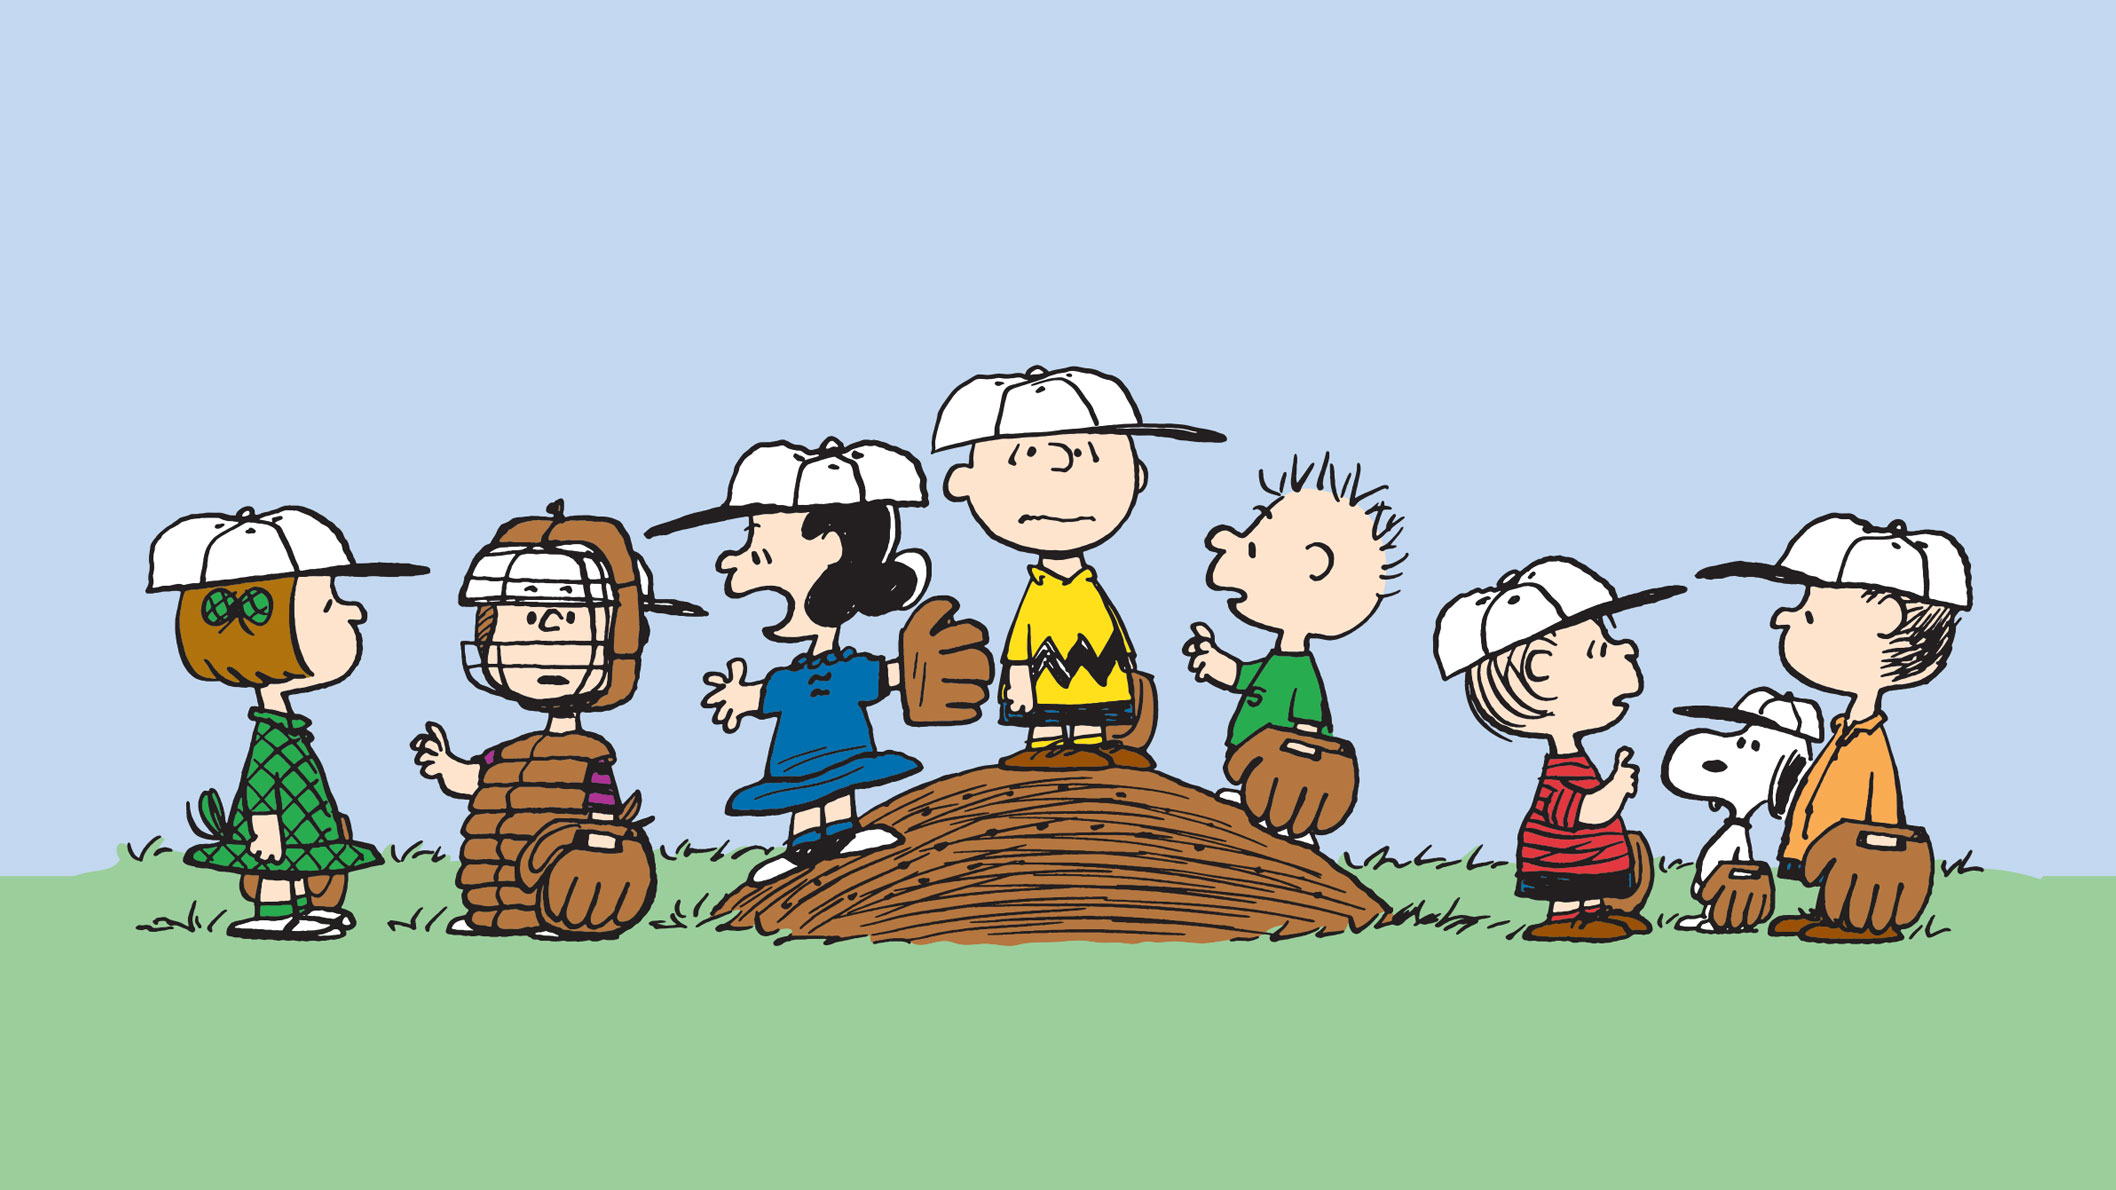 Eight cartoon characters, in baseball gear, standing on the grass and looking at each other.